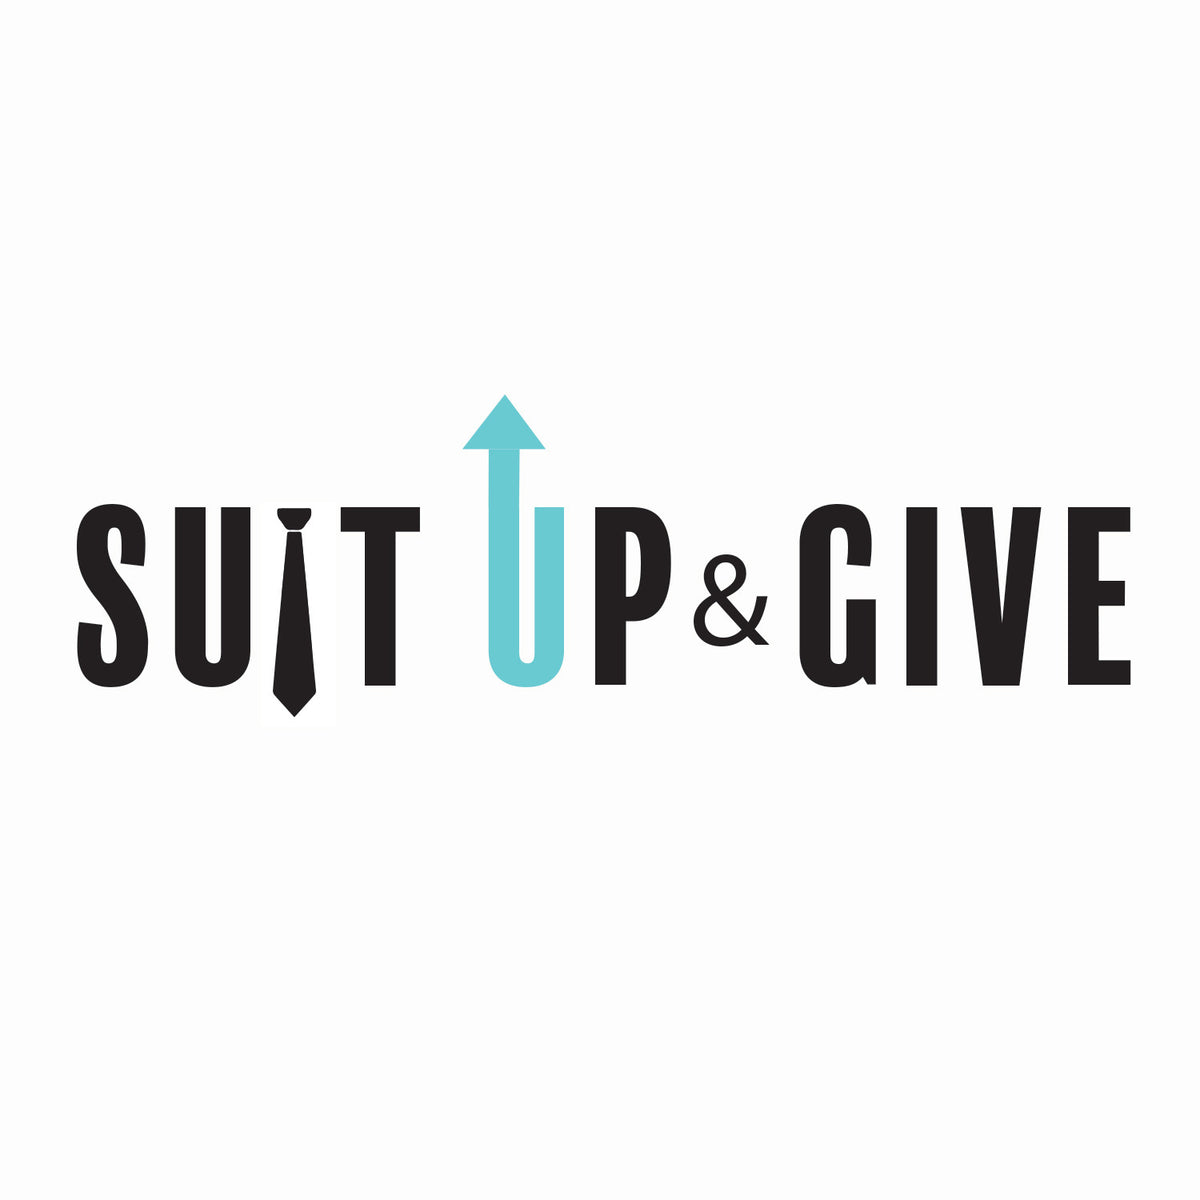 TGS Turns One and Launches Suit Up & Give Campaign